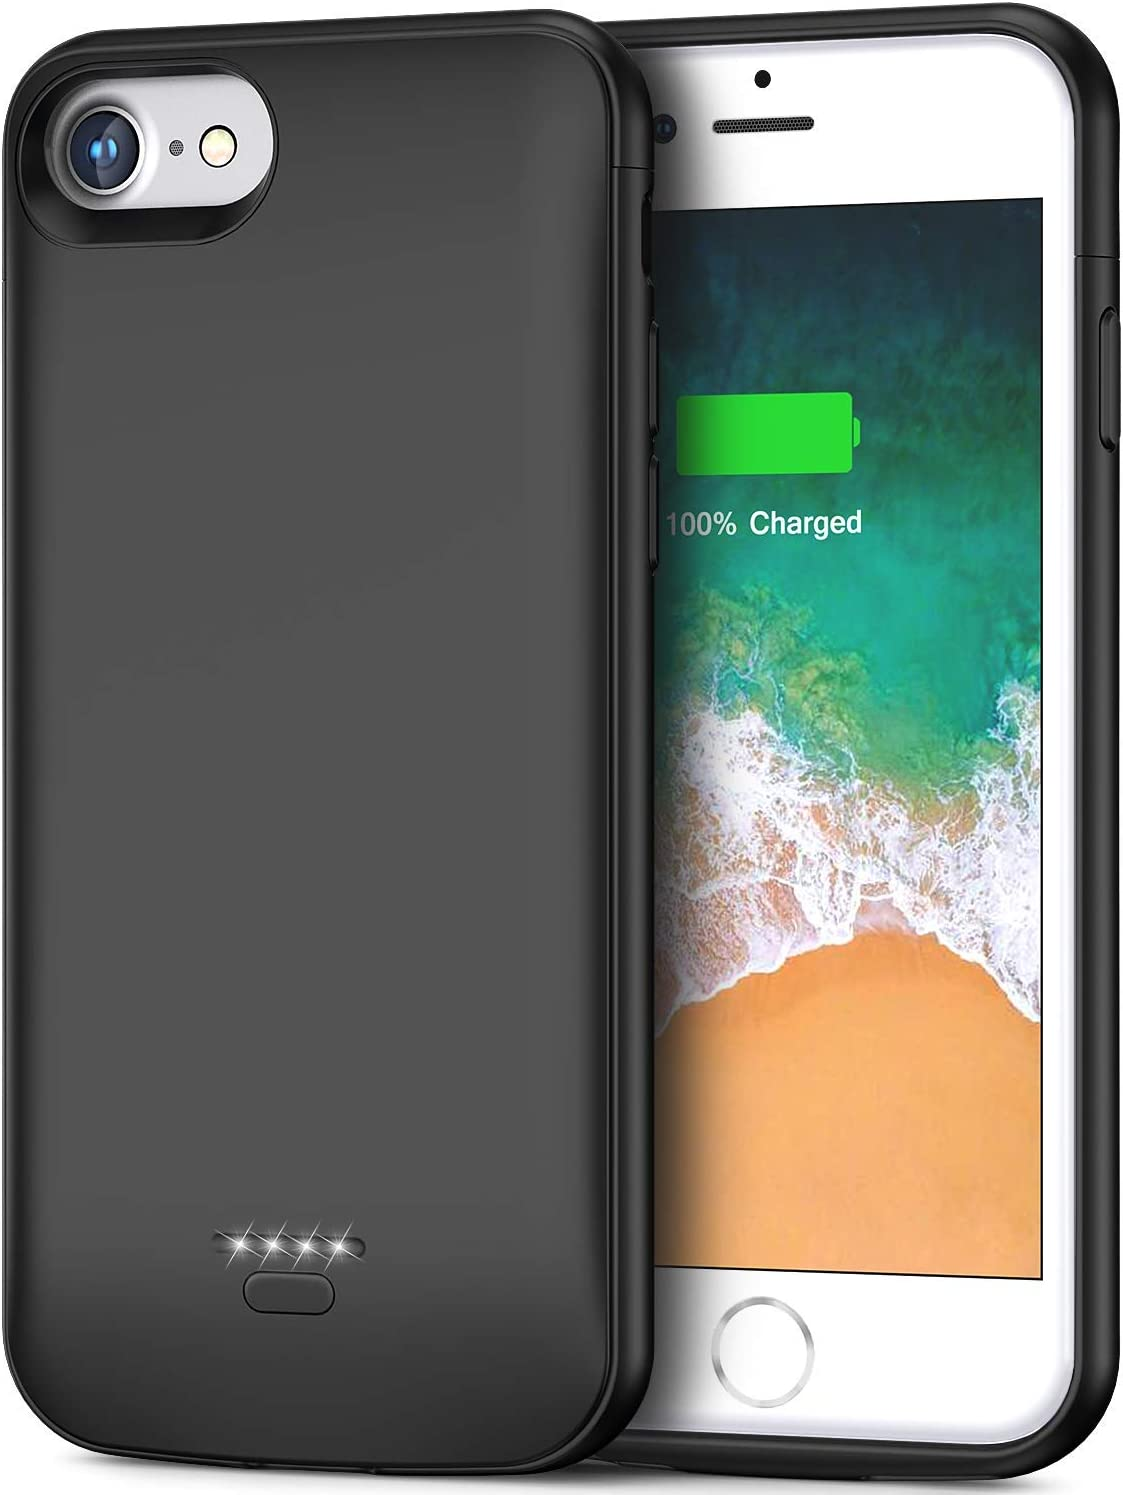 FLYLINKTECH Battery Case for iPhone 6